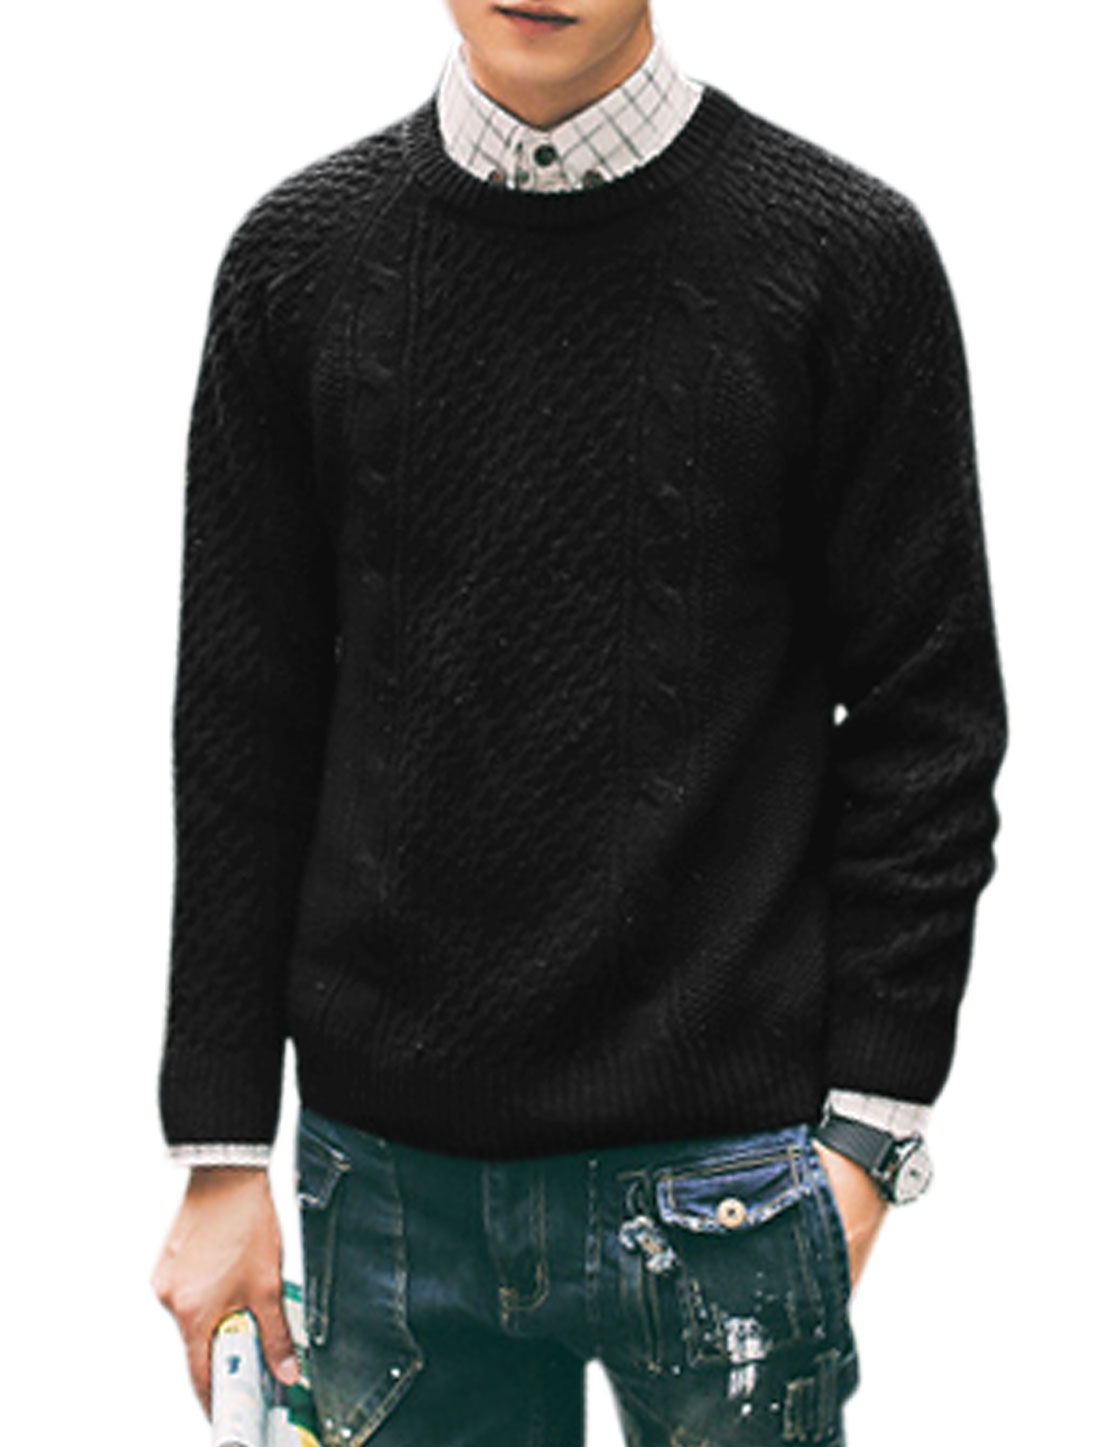 Men Slipover Long Sleeve Crew Neck Ribbed Sweaters Black M